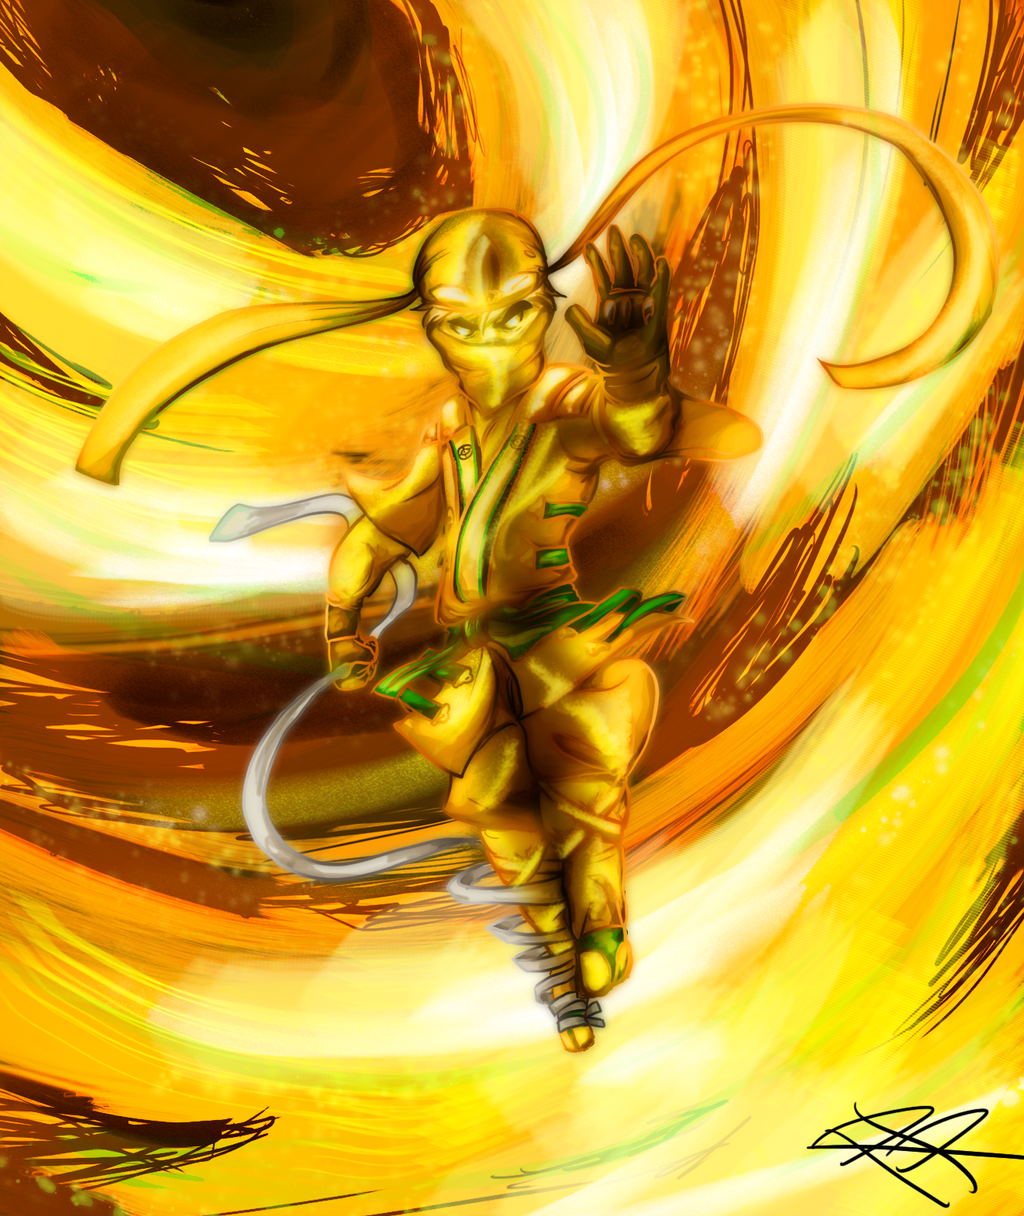 Gold Ninja by RRproAni on DeviantArt